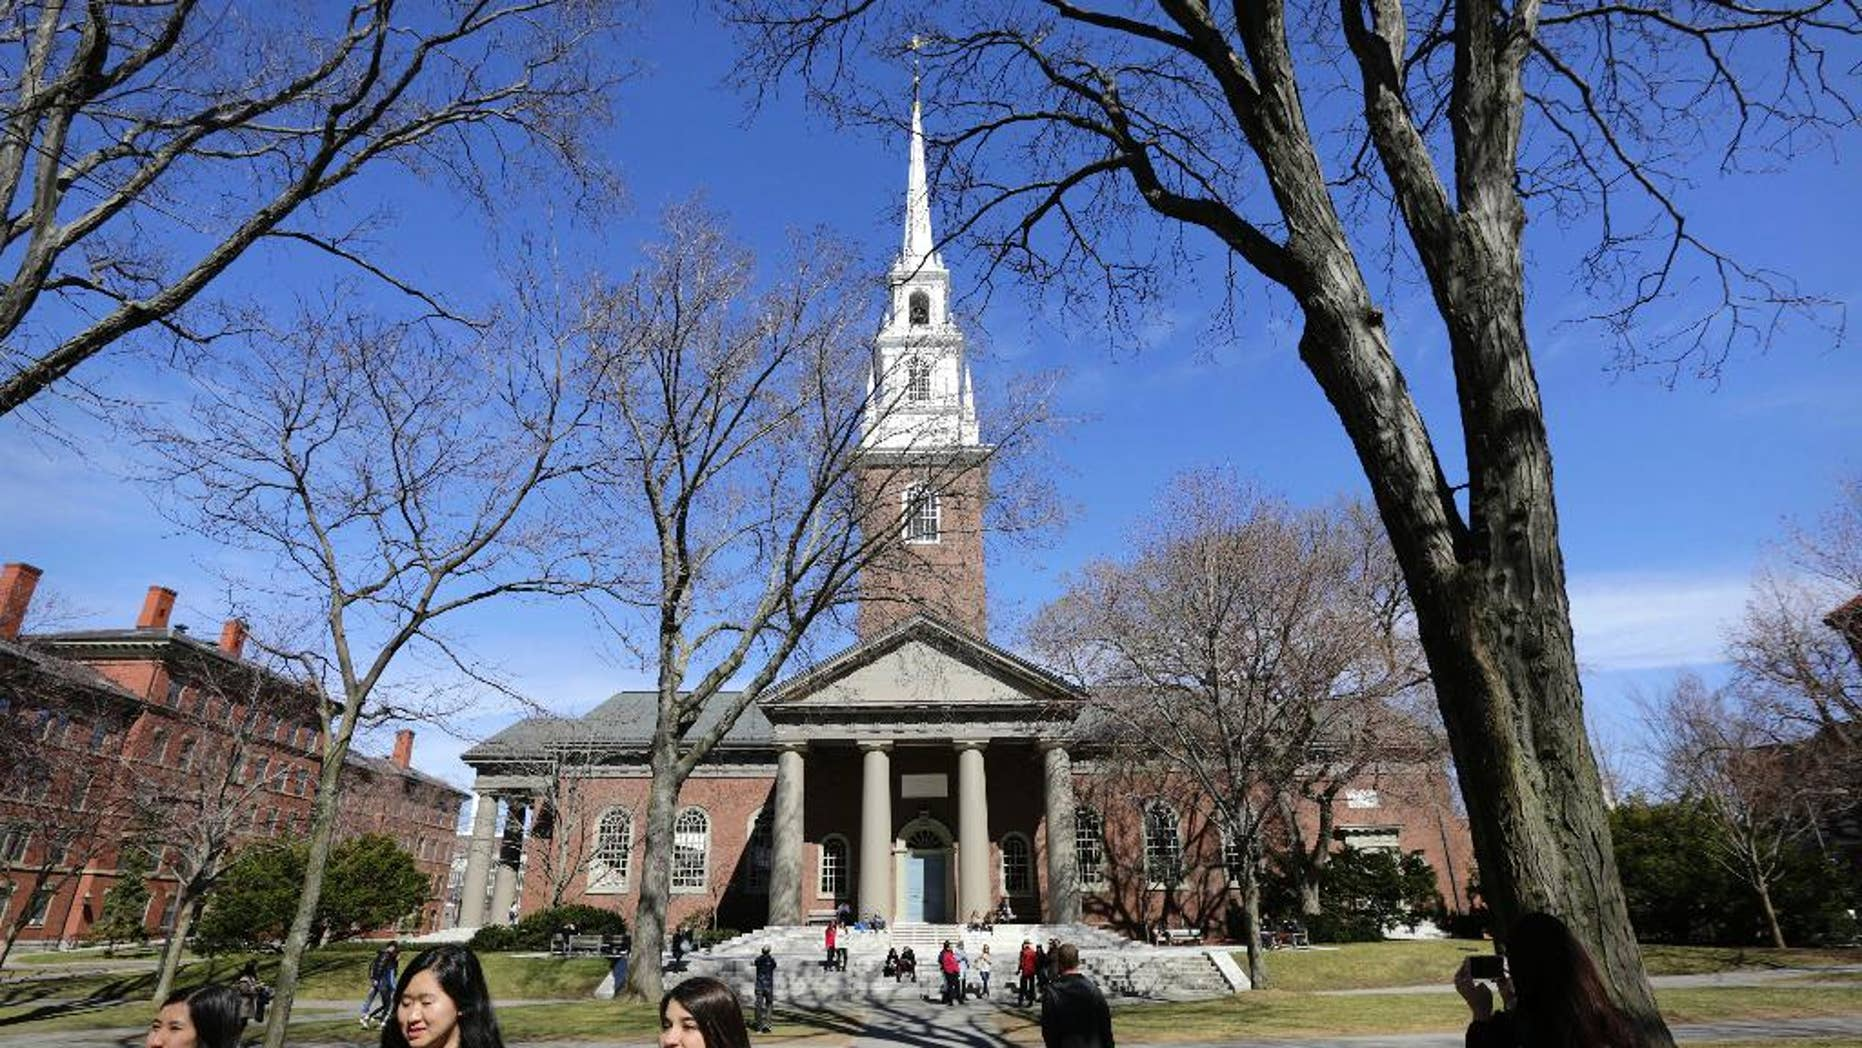 March 13, 2016: People walk near Memorial Church on the campus of Harvard University in Cambridge, Mass.